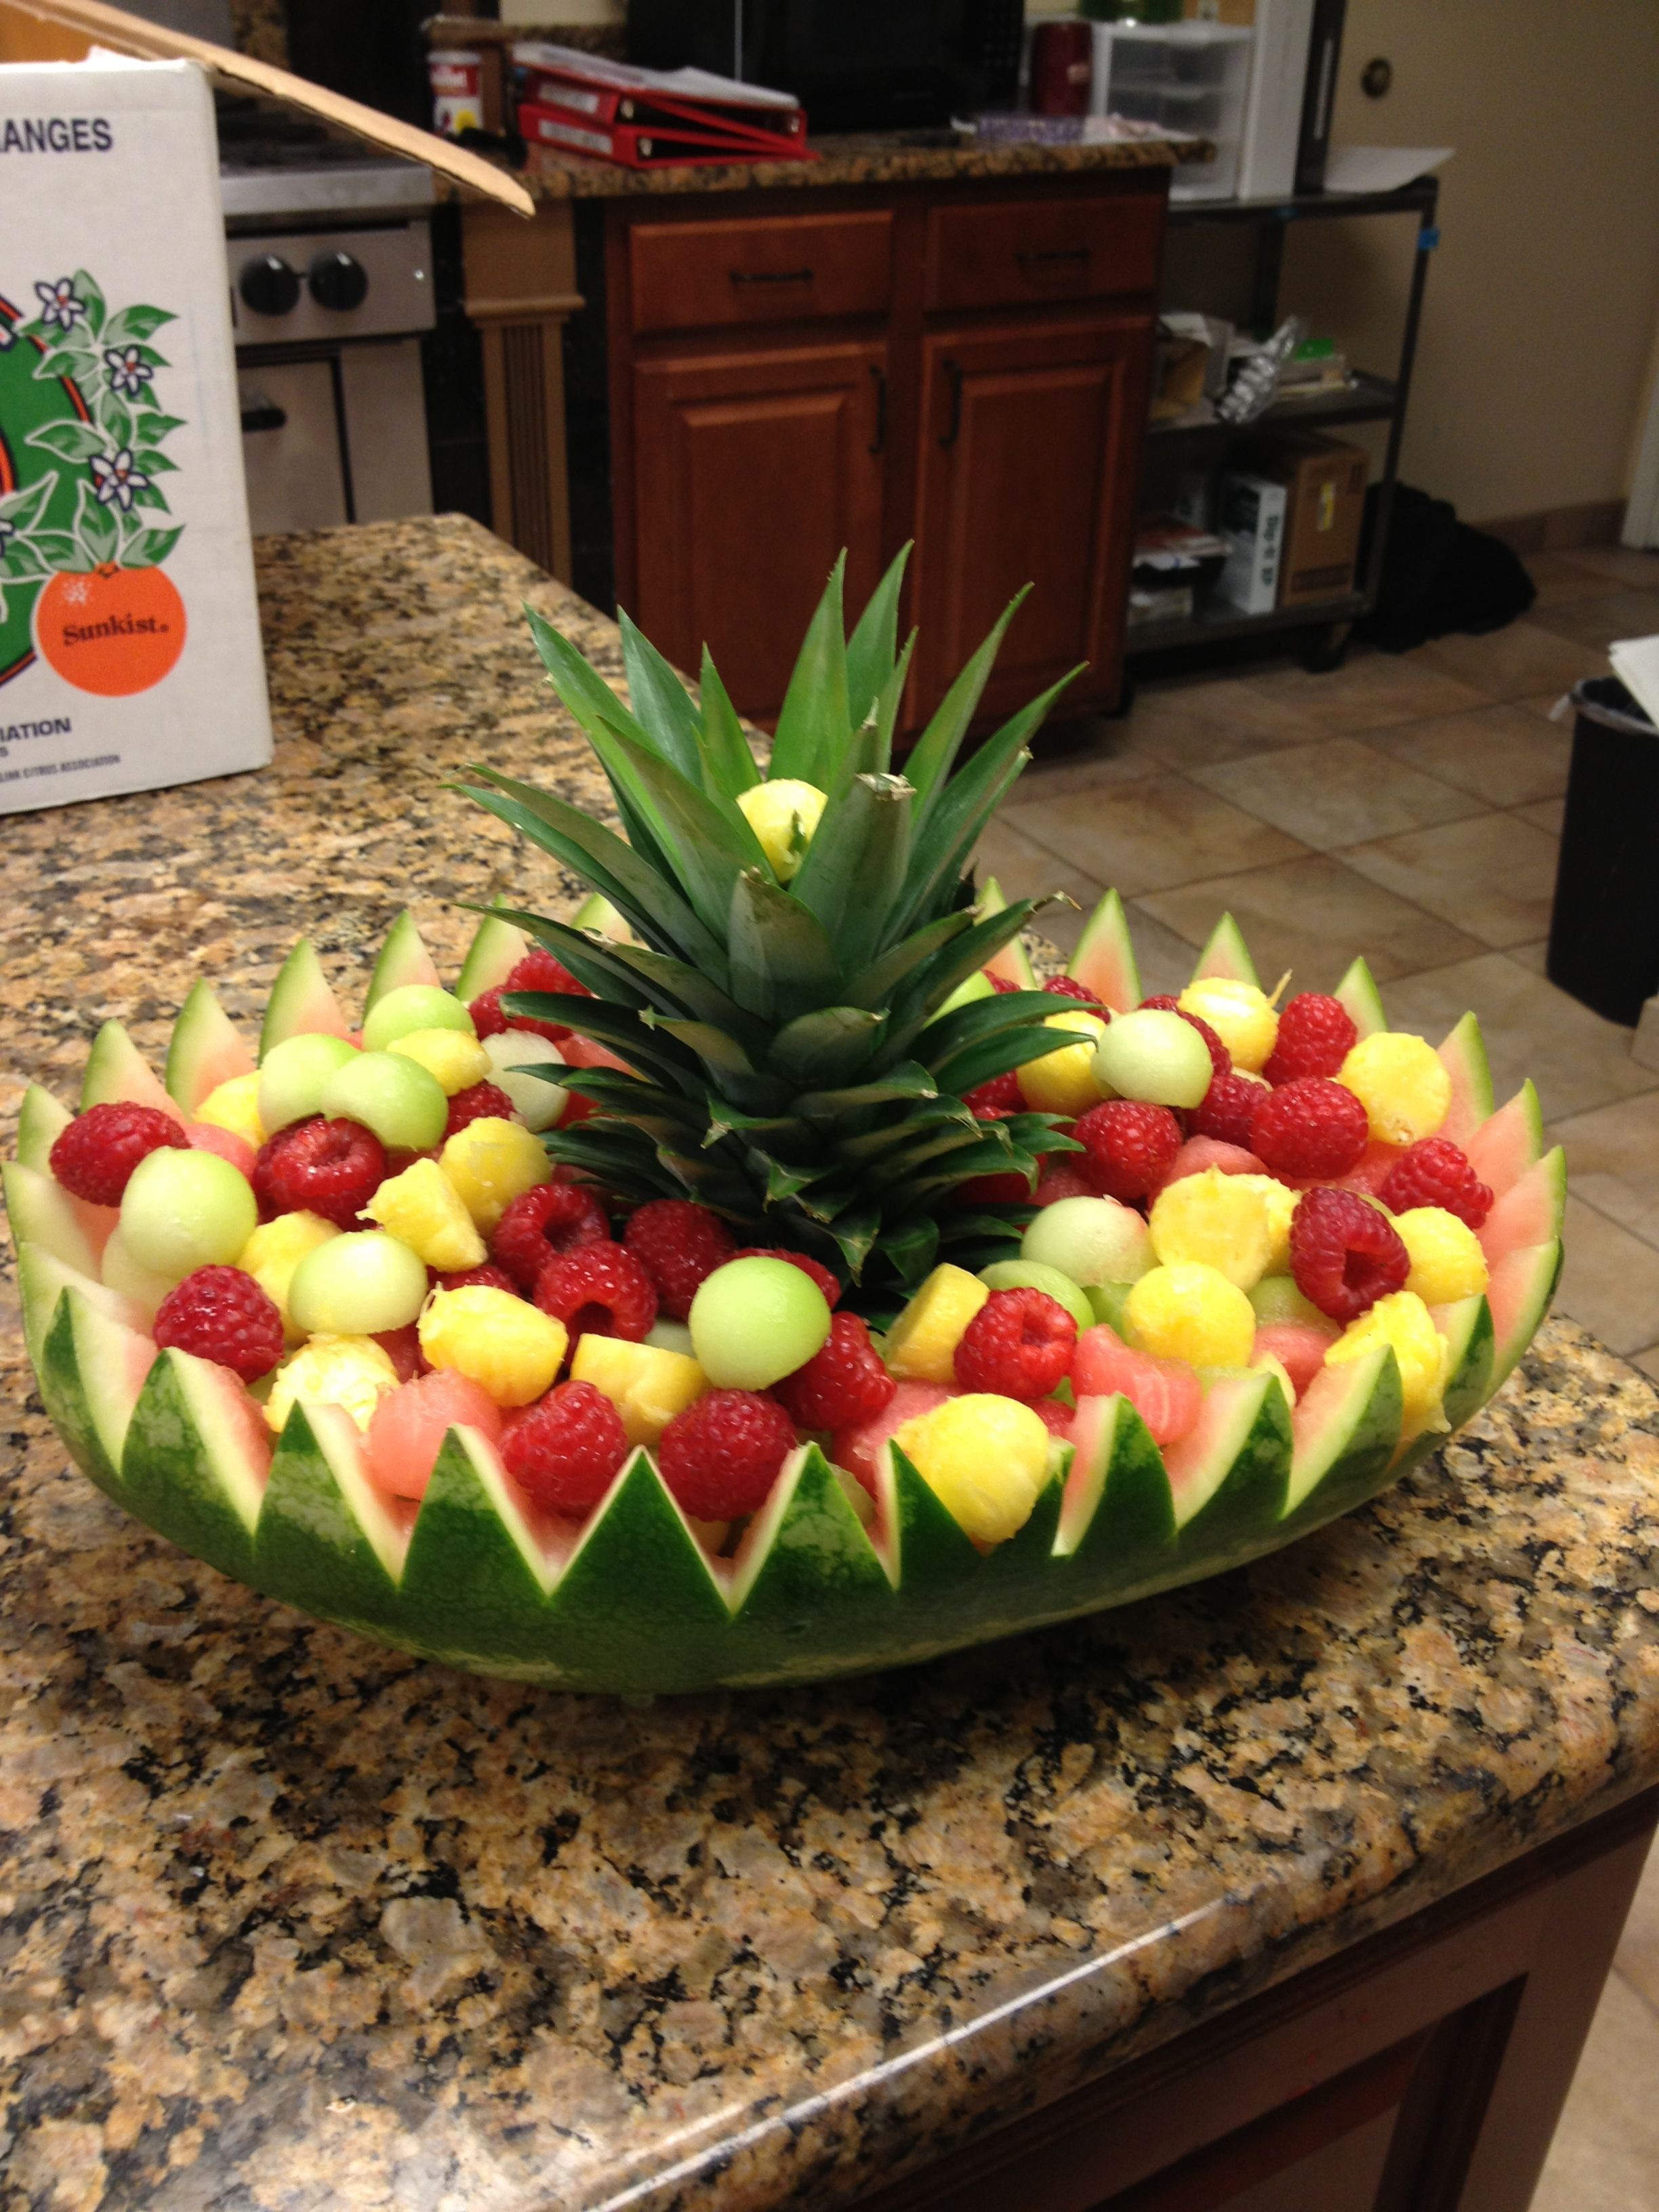 Designer Fruit Basket Watermelon Basket I Did Work Culinary Work Pinterest